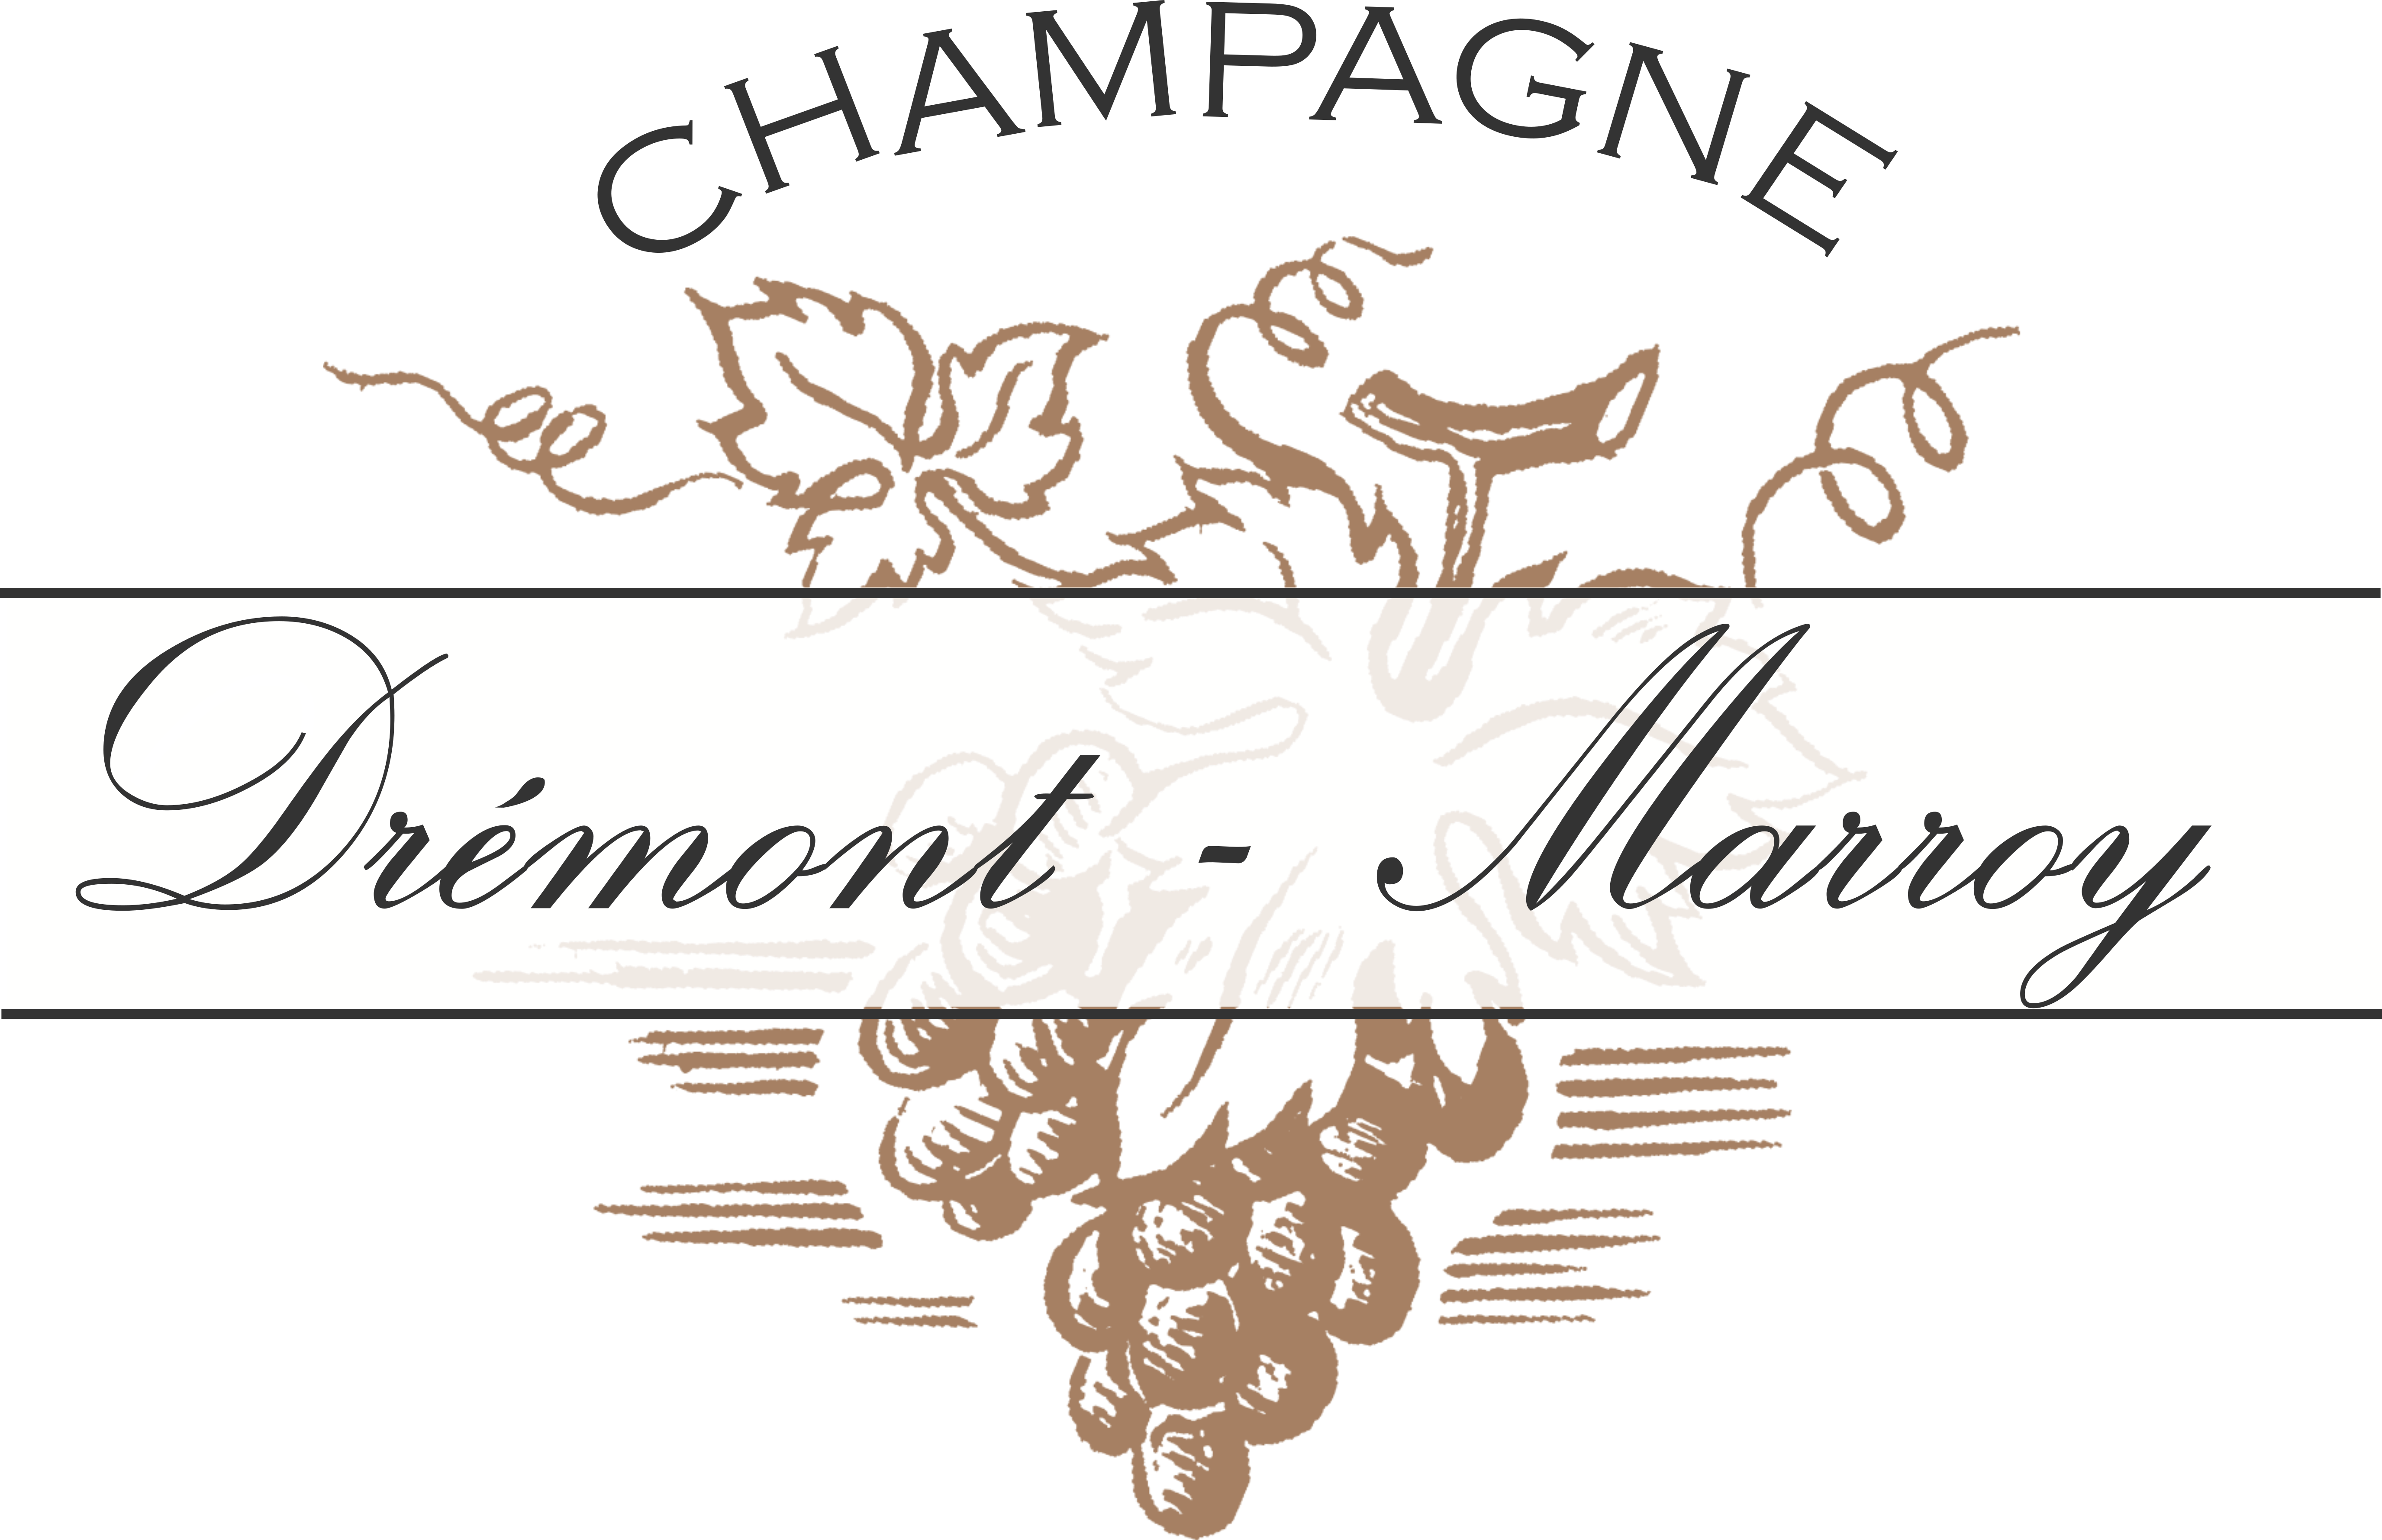 Champagne Dremont-Marroy